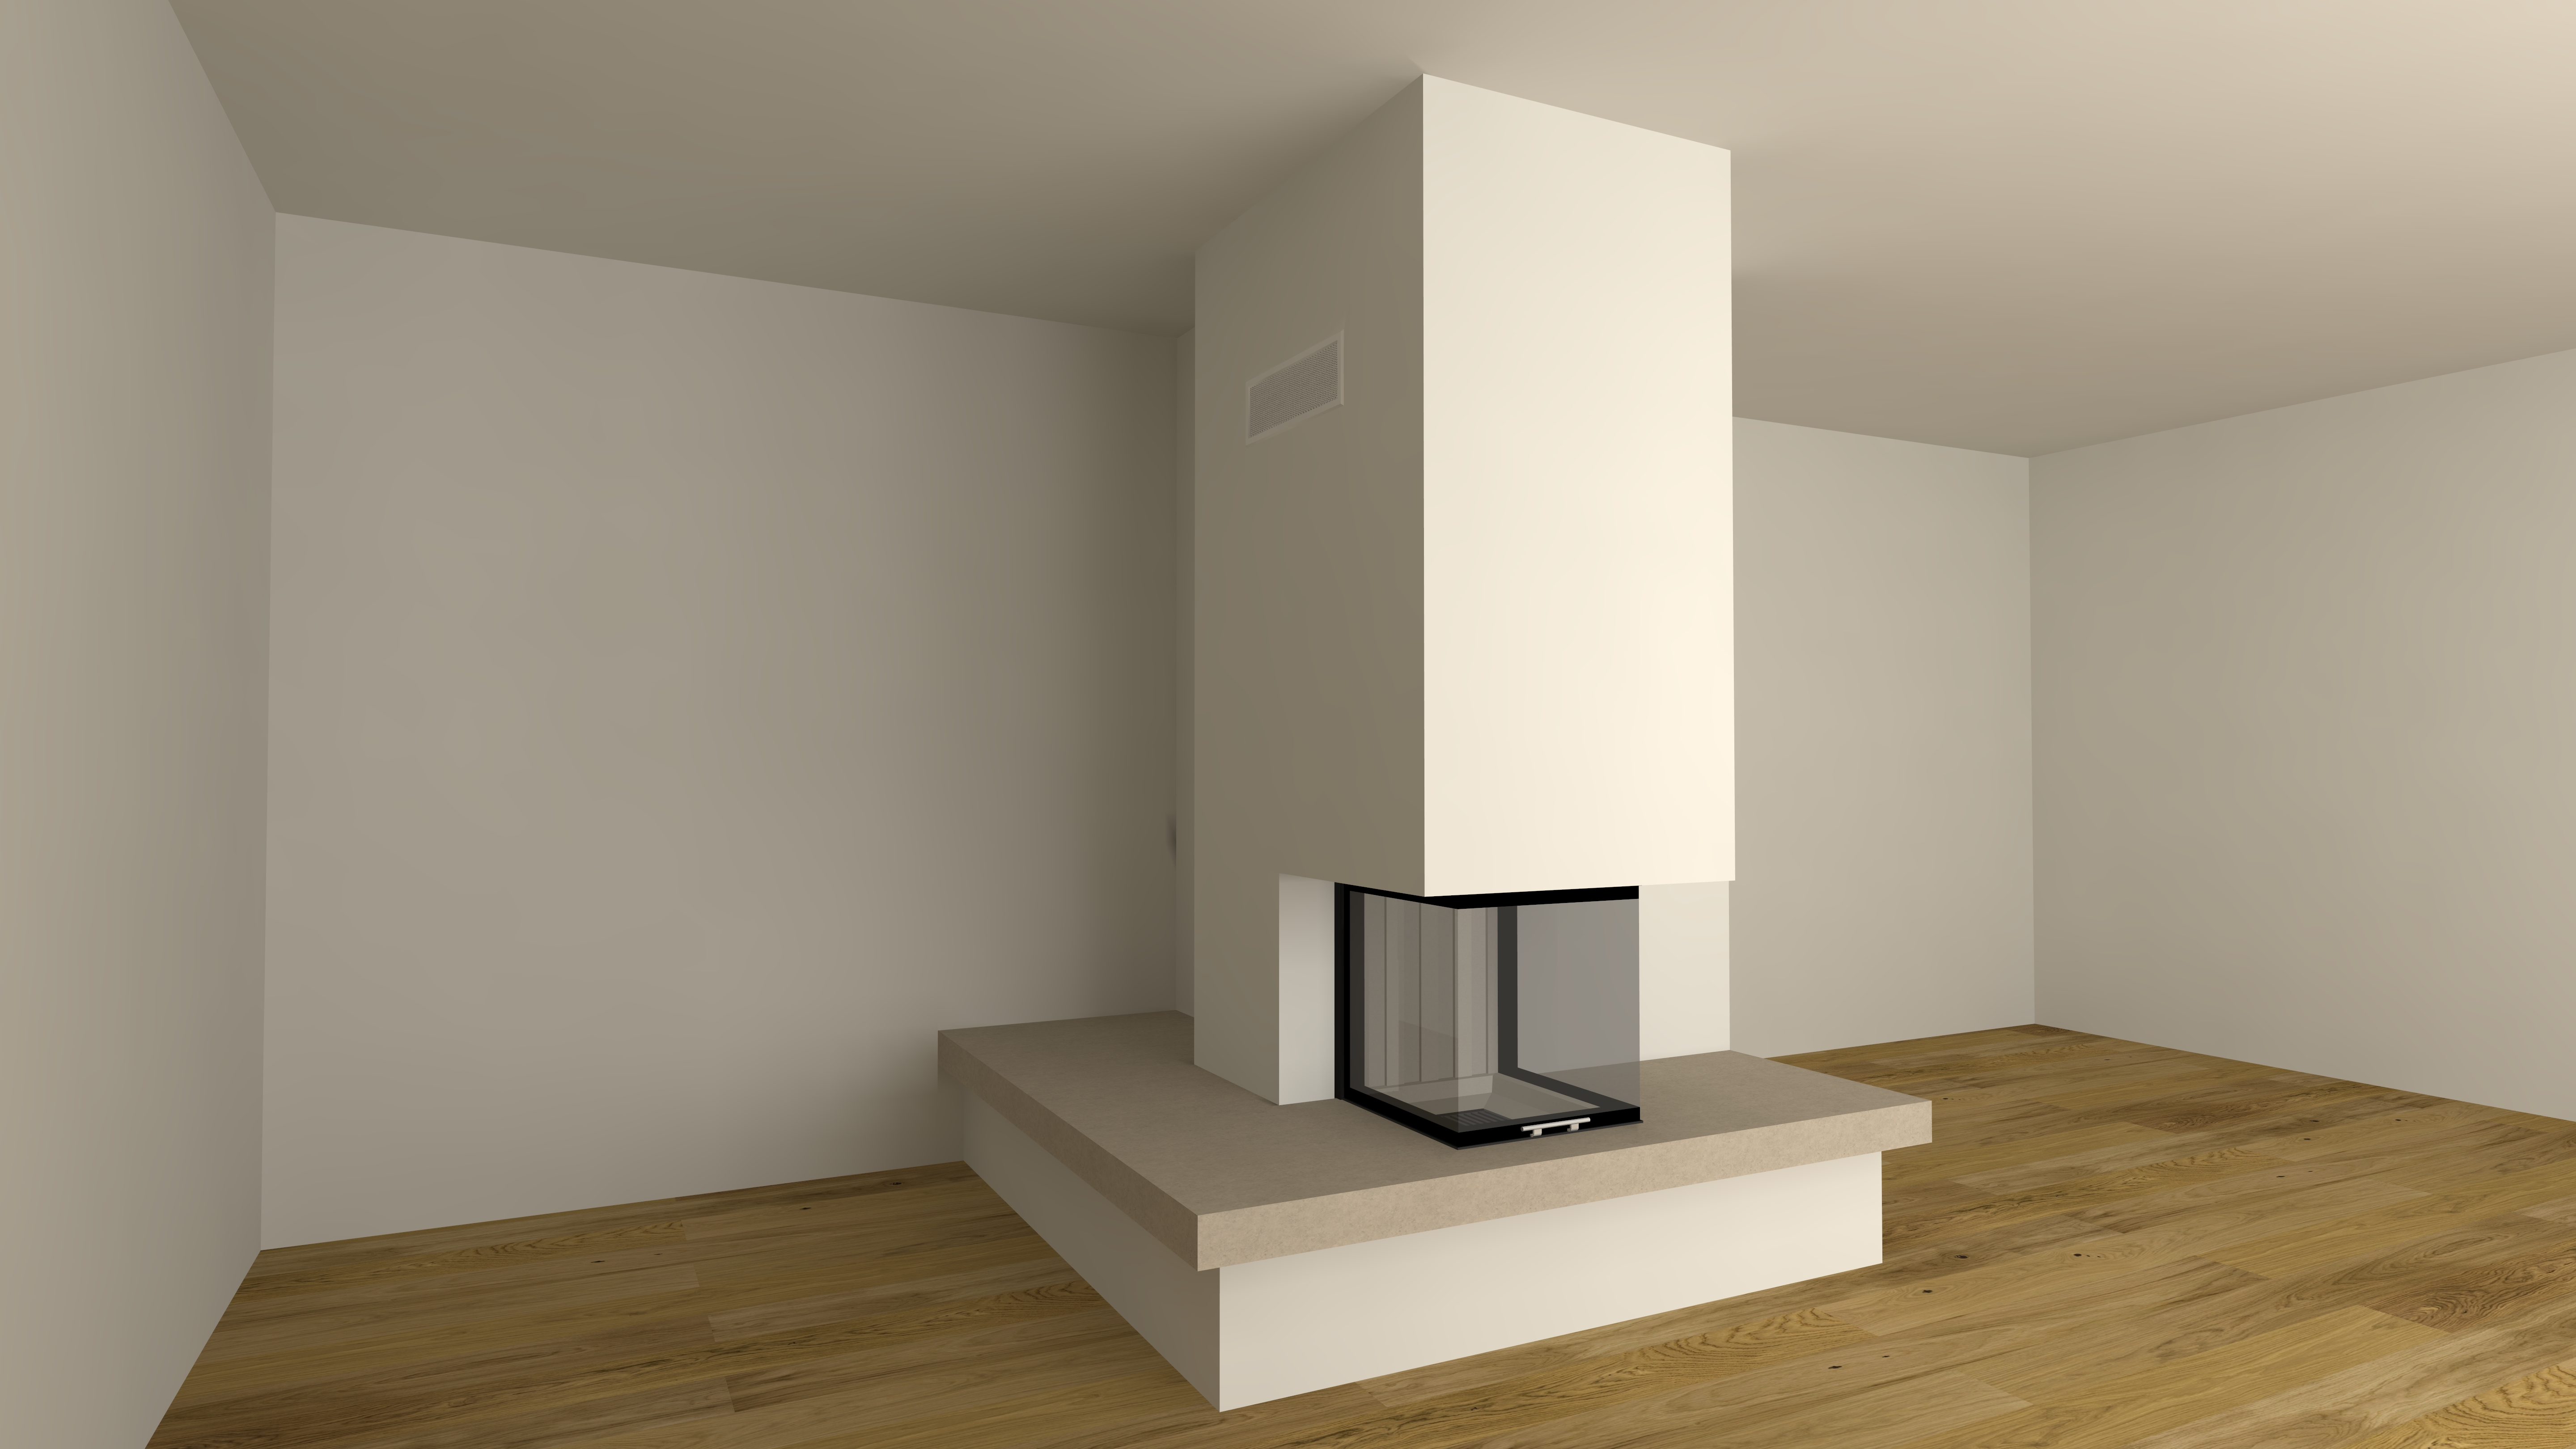 dreiseitiger kamin a 40 3 mit spartherm mit montage www. Black Bedroom Furniture Sets. Home Design Ideas